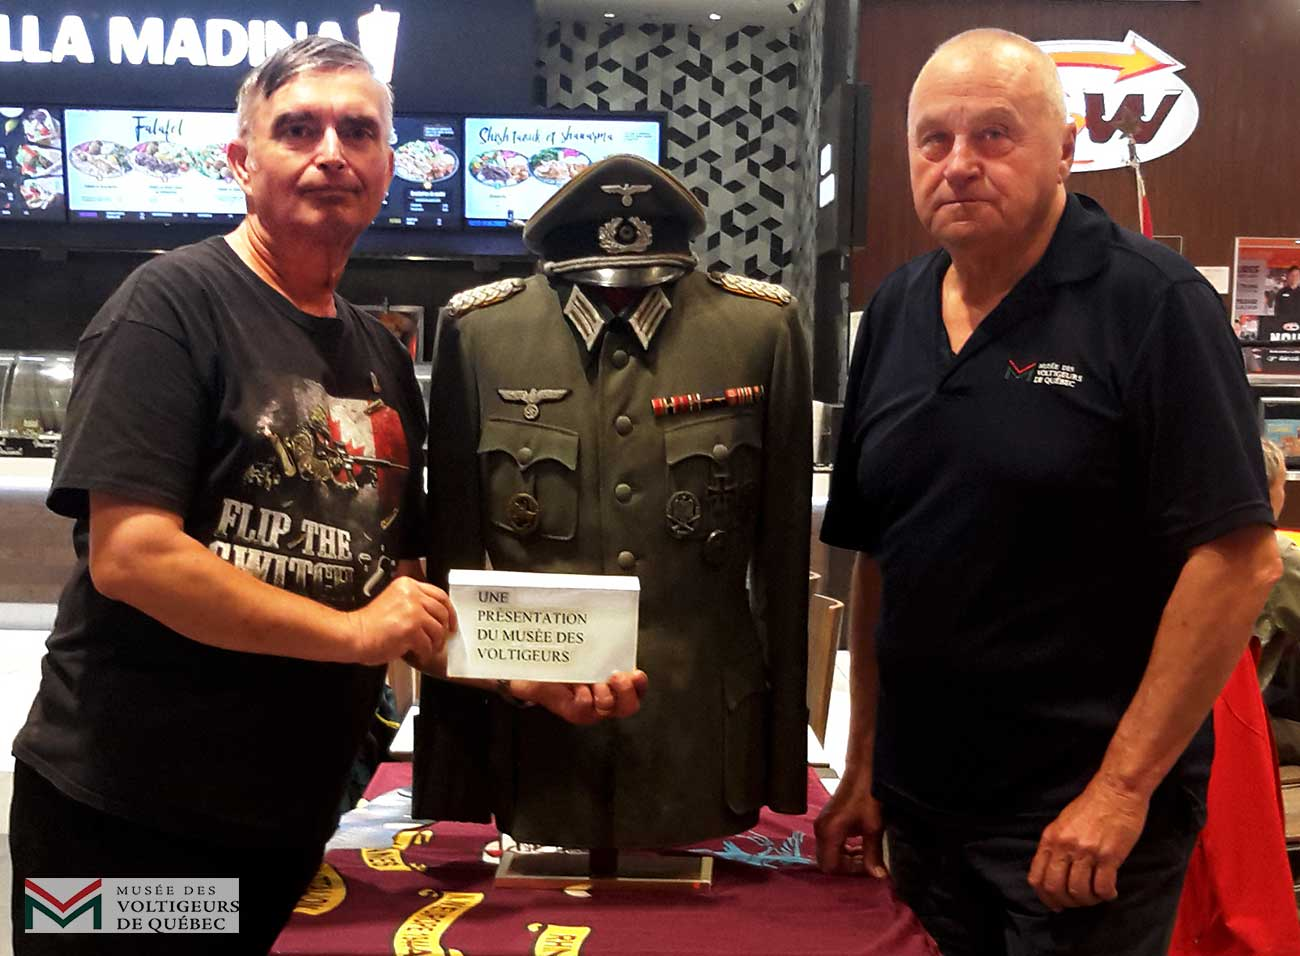 MikeRaymondVetsGermanUniform26June2019